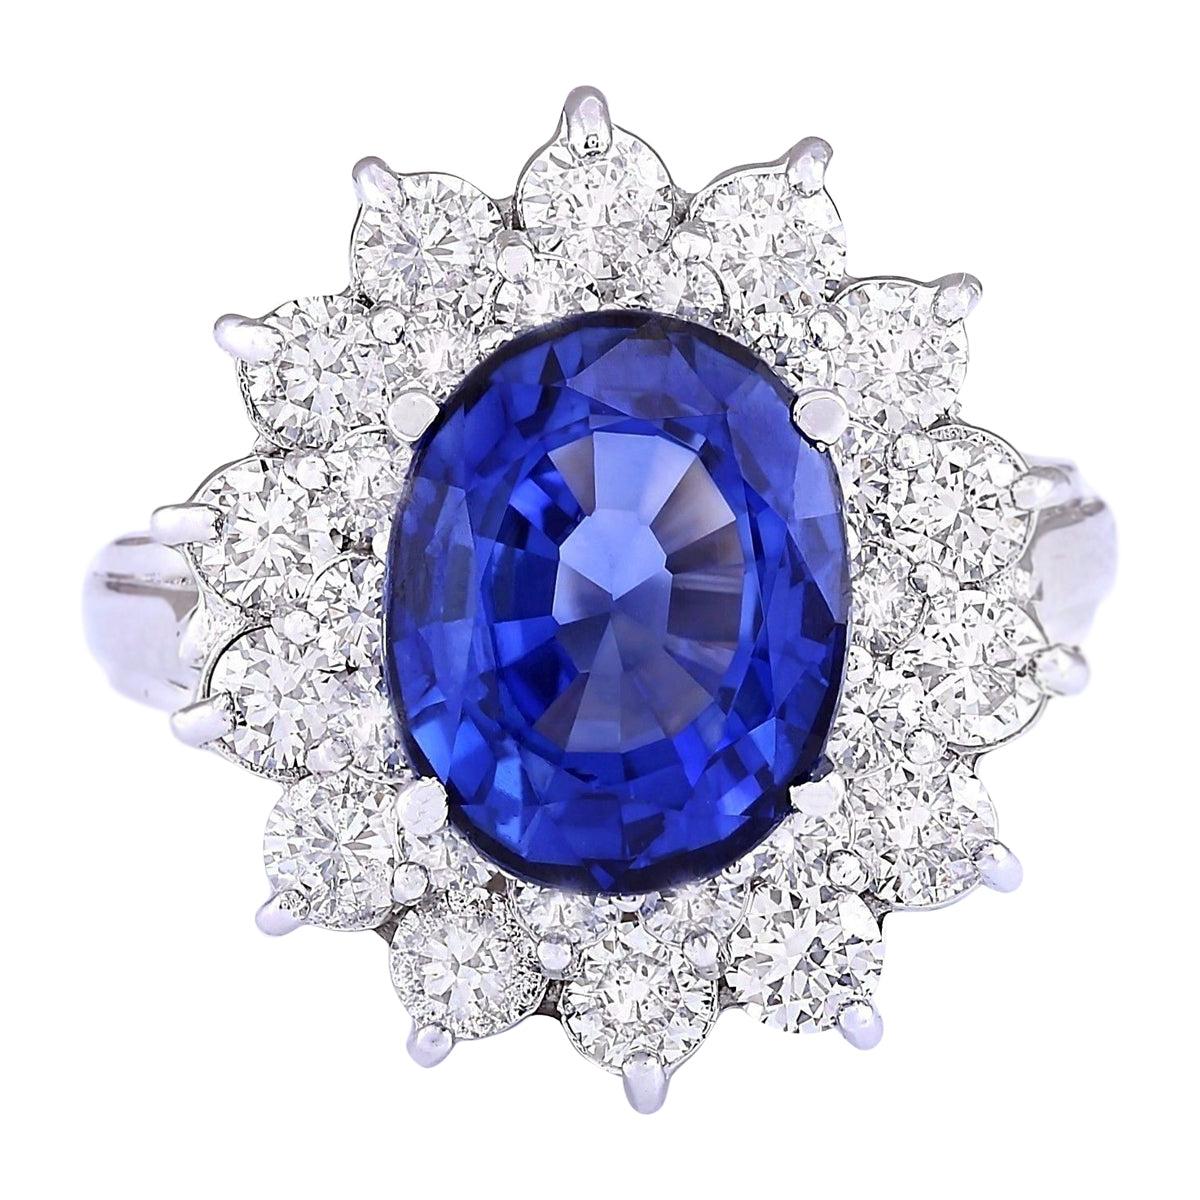 5.55 Carat Natural Sapphire 14K White Gold Diamond Ring - Fashion Strada